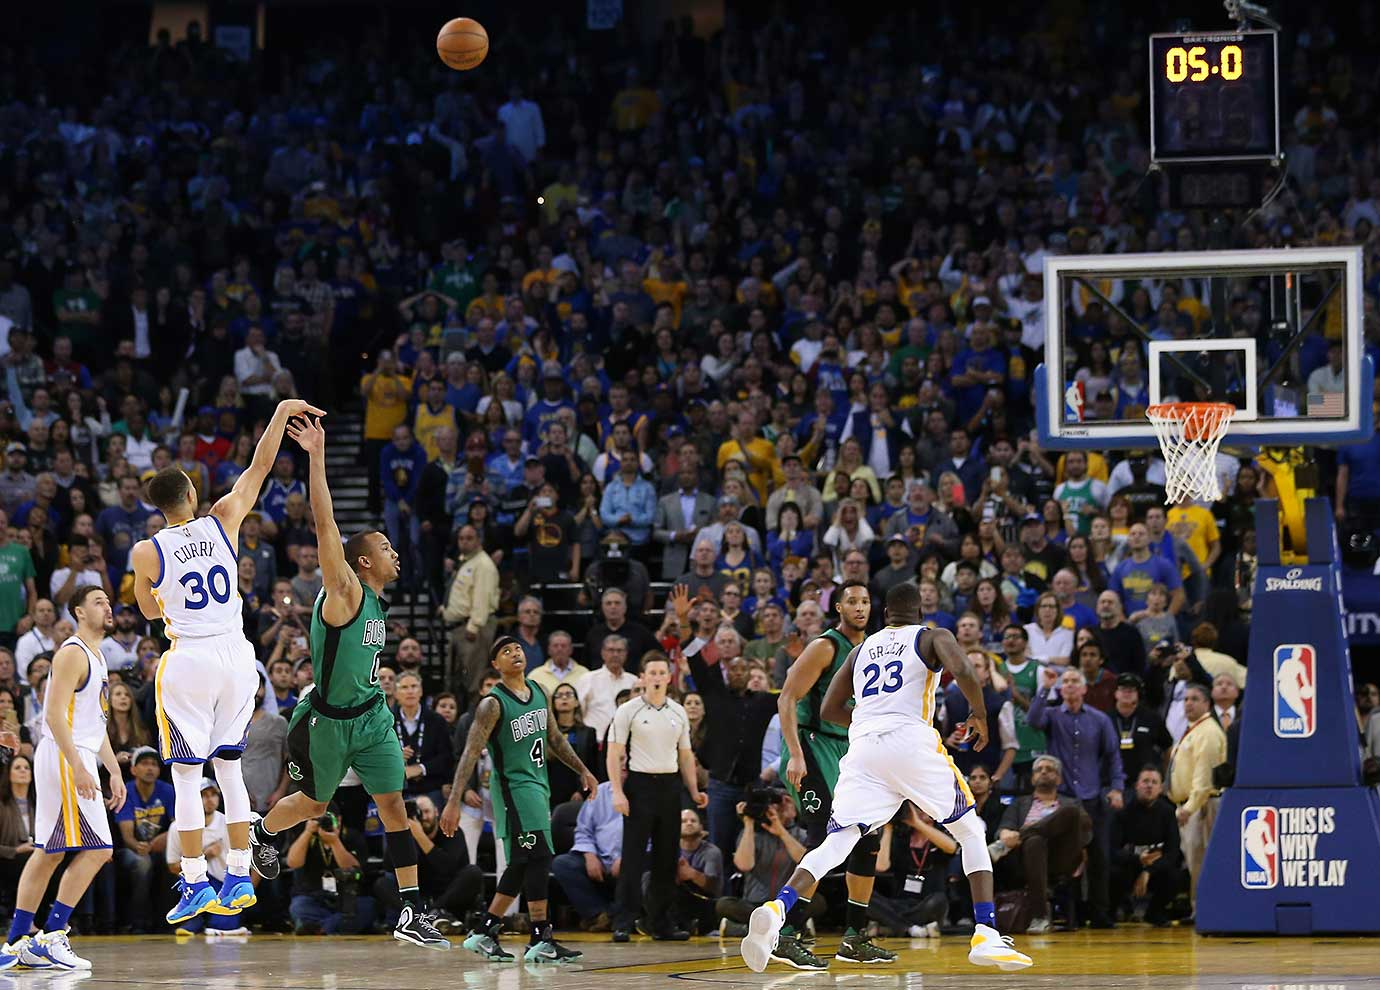 On a night in which Golden State hit 20 three-pointers, Steph Curry missed this one in the closing seconds, which would have tied the game against Boston. Instead the Celtics won 109-106.